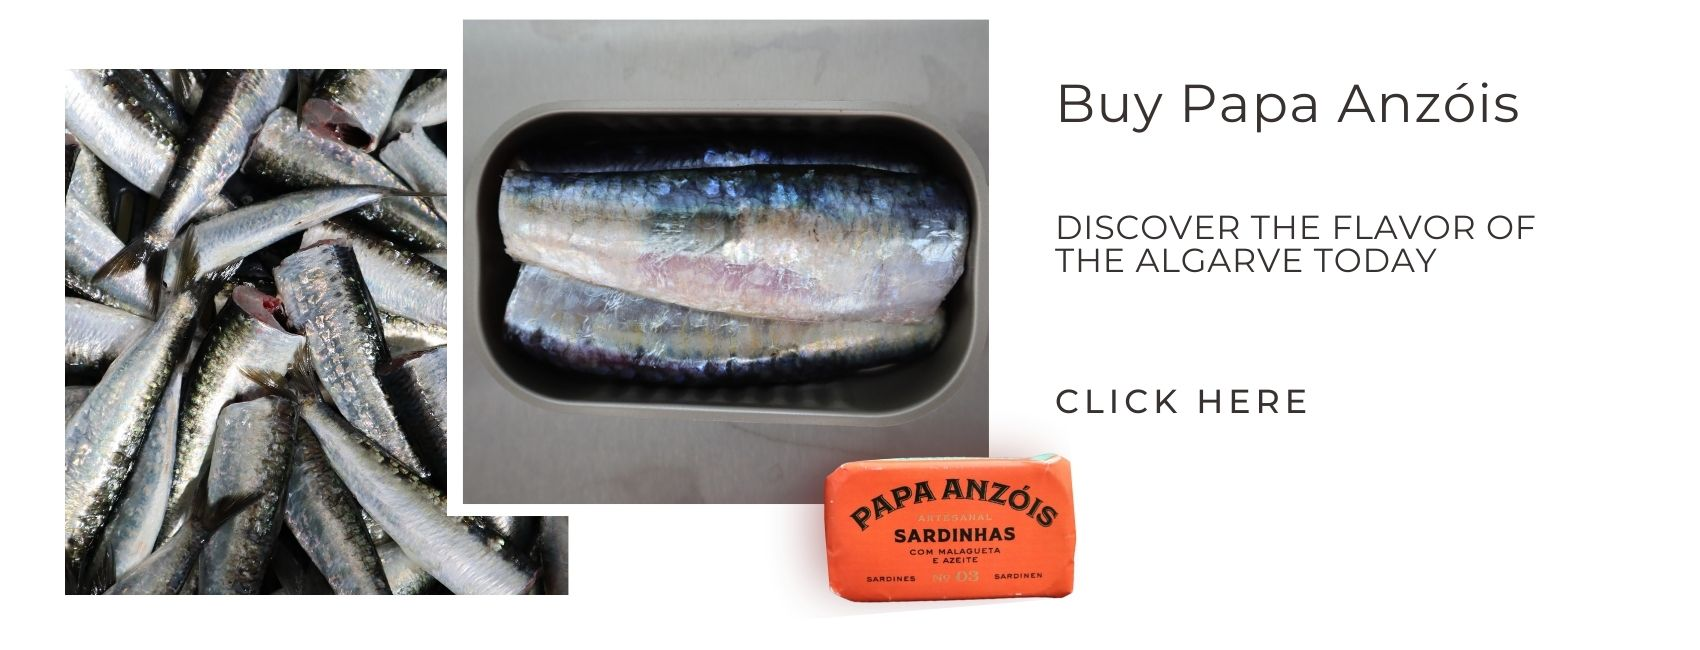 Buy Papa Anzois at our shop